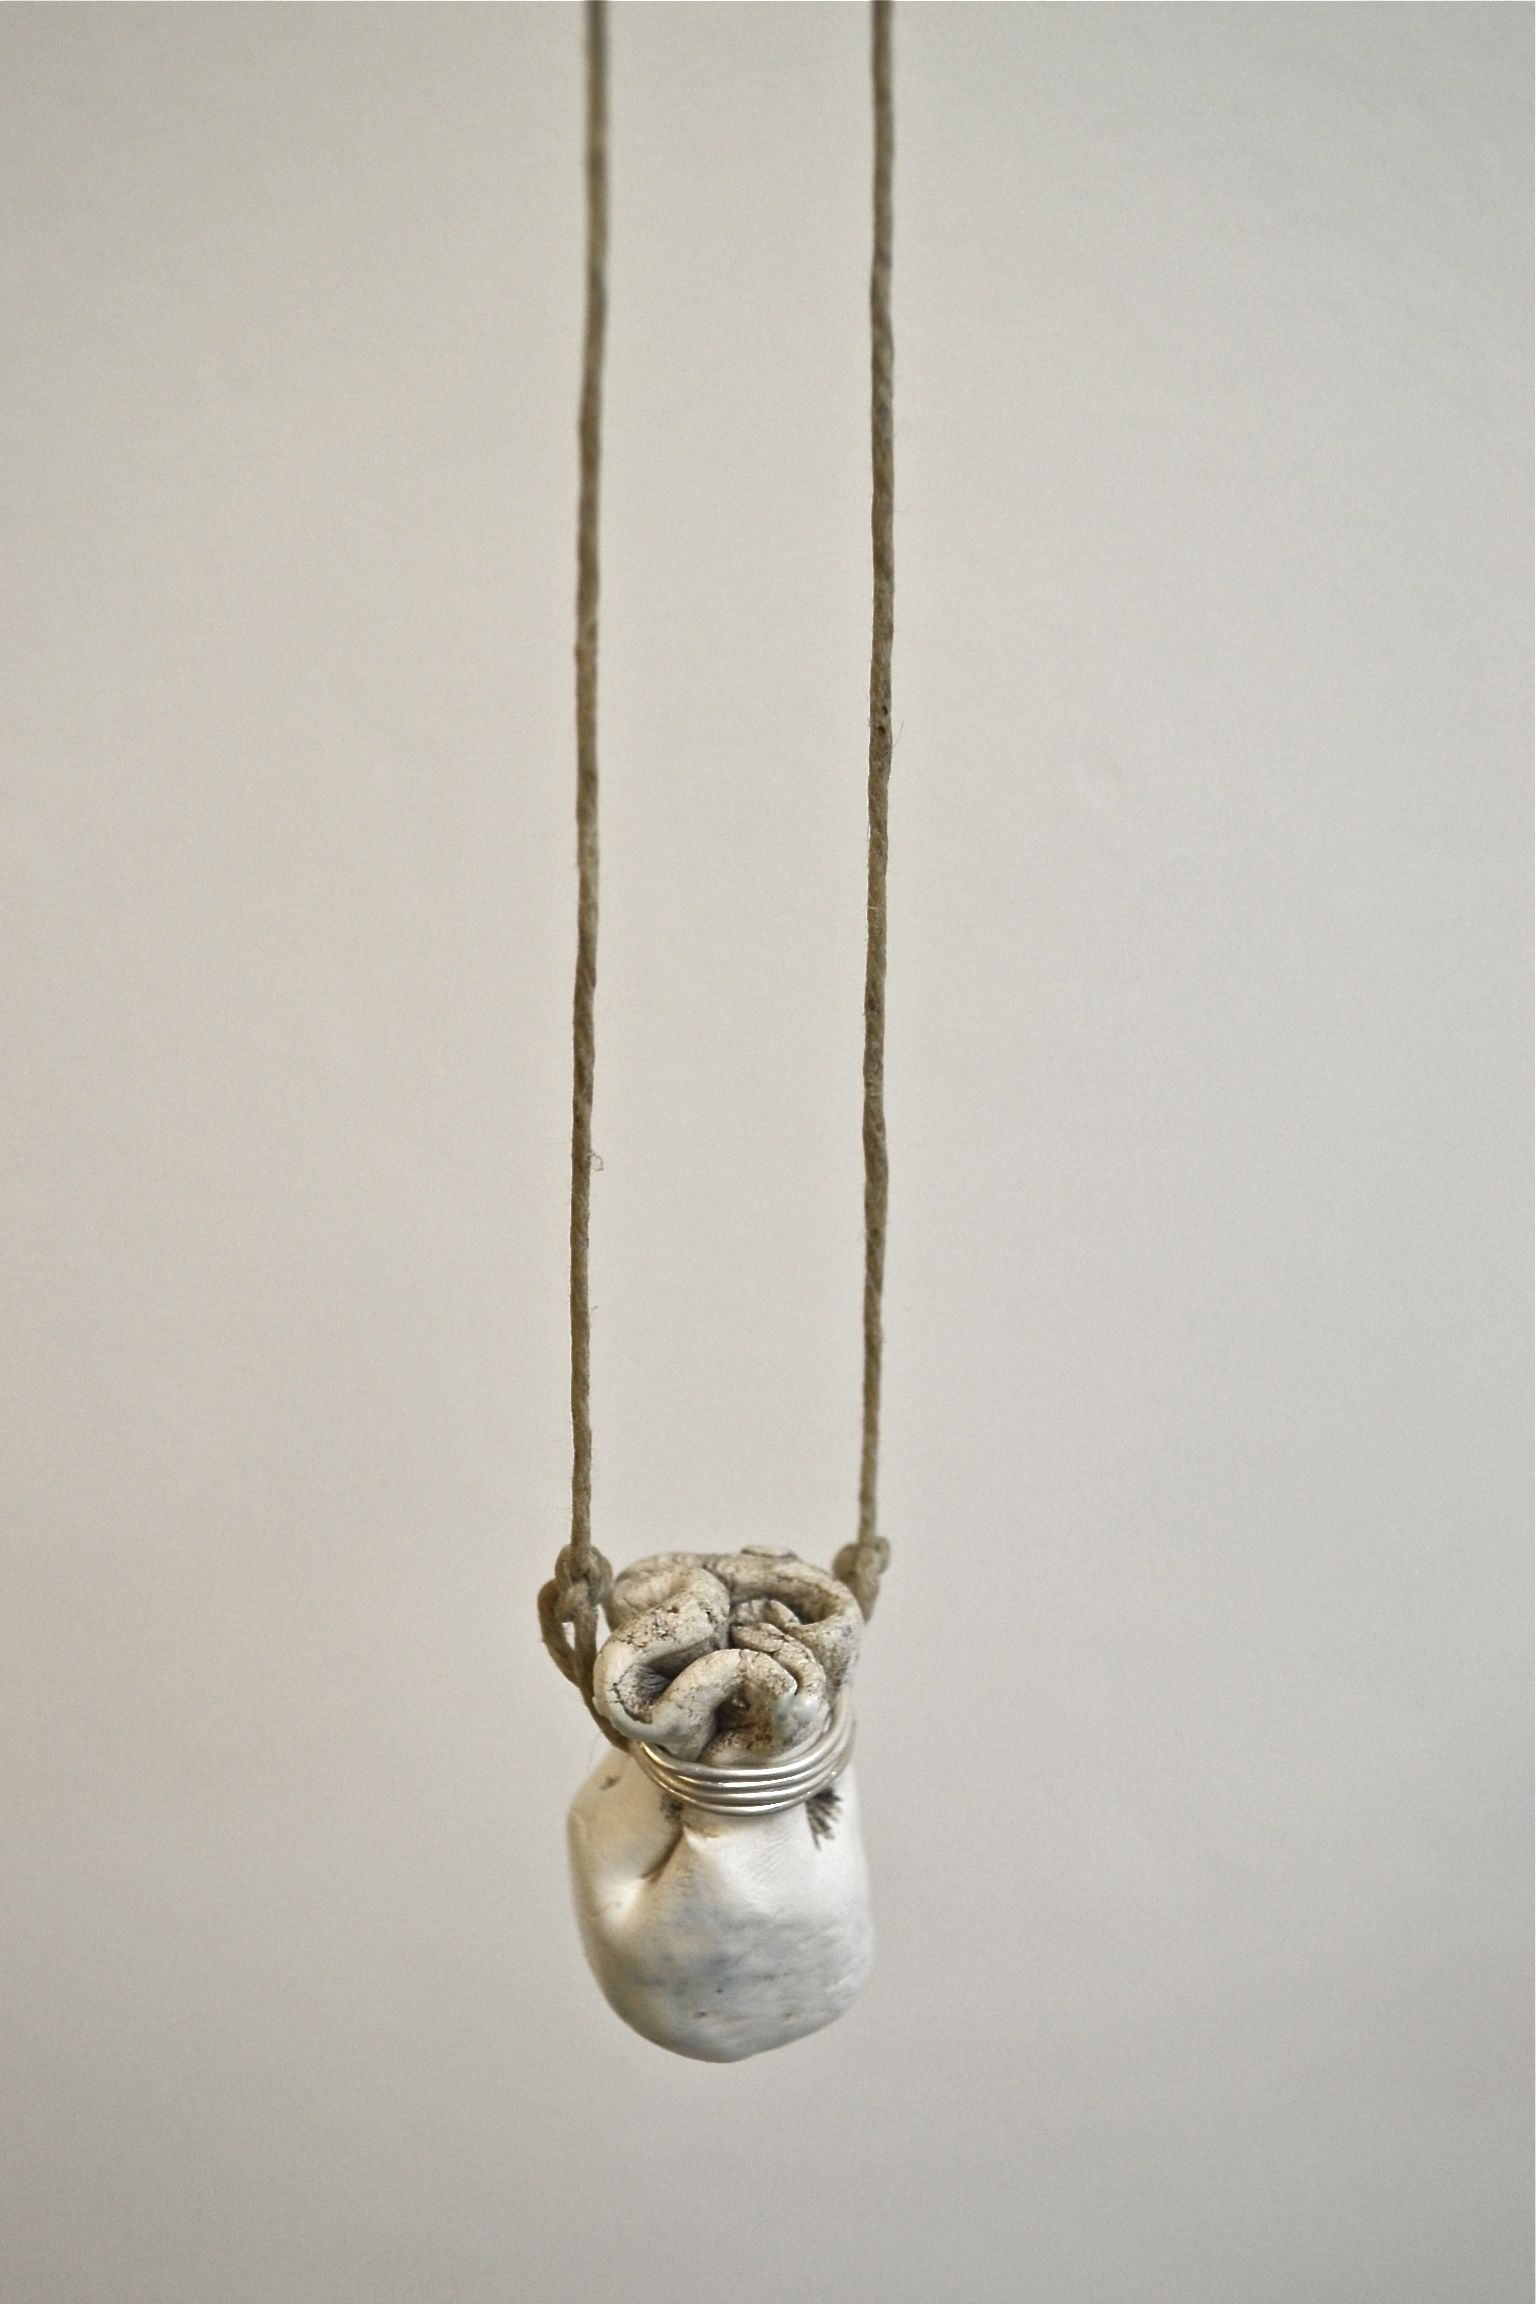 Hannah Blore Porcelain necklace